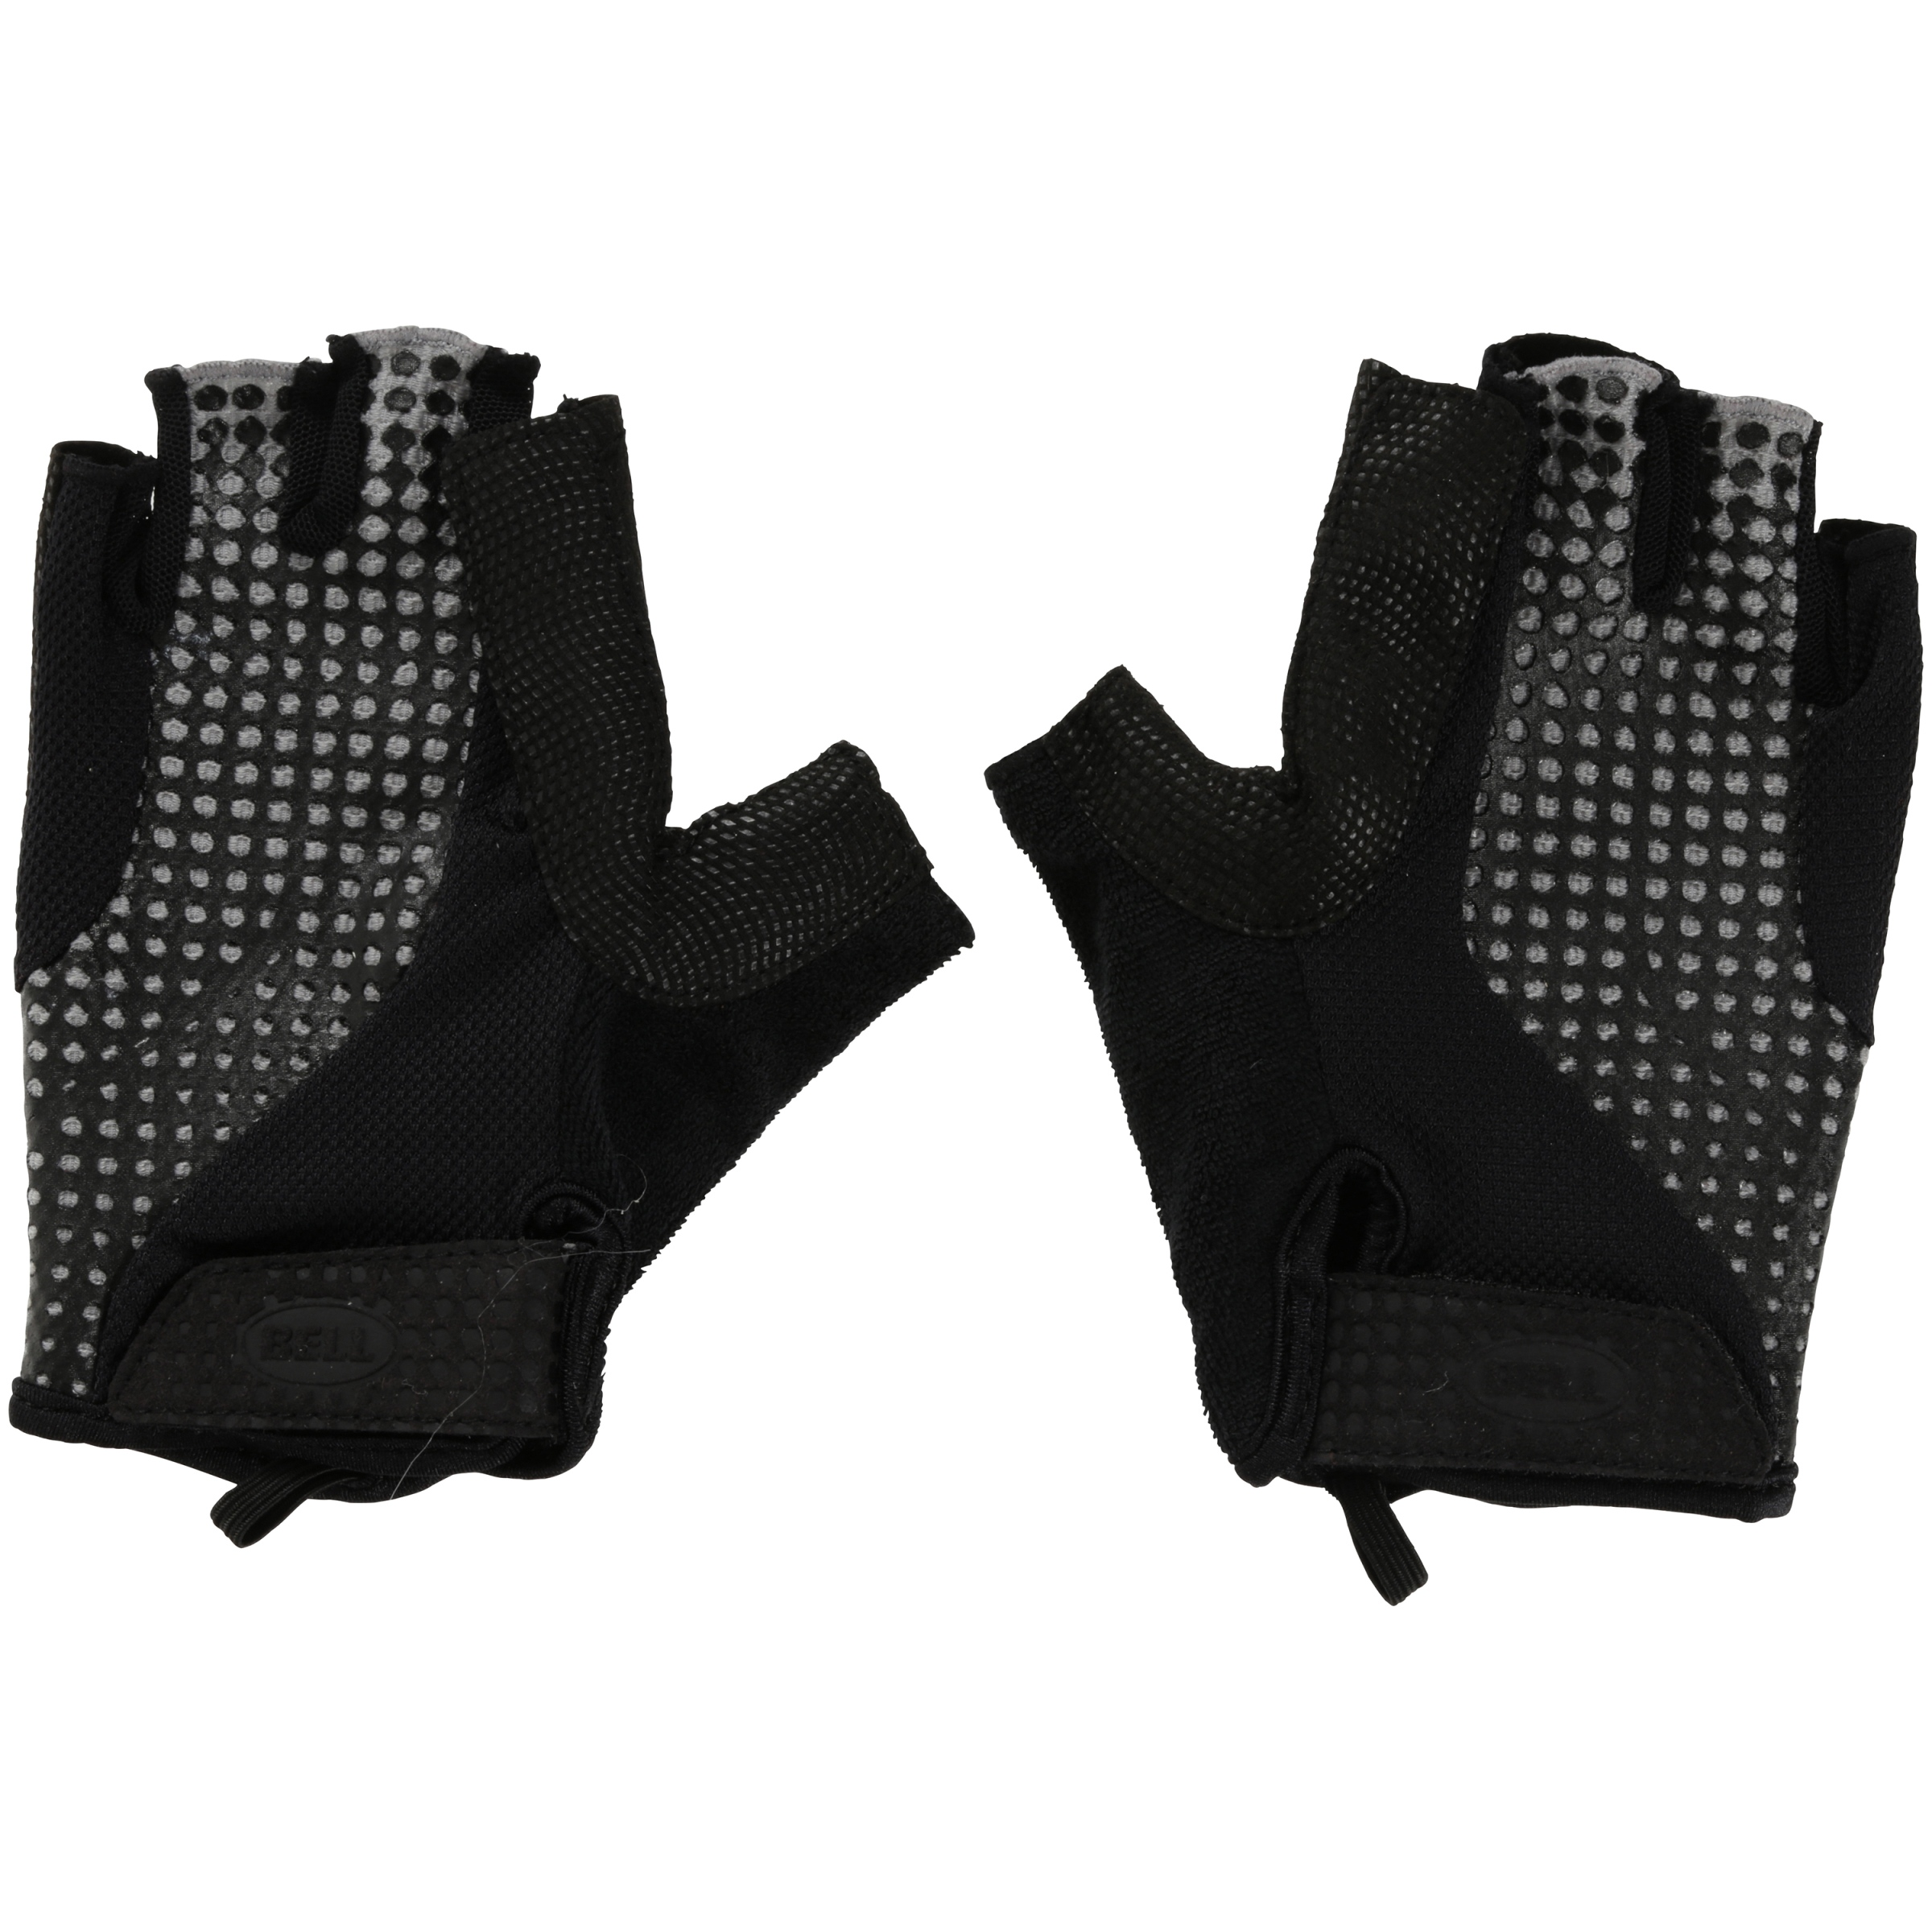 Bell® Bicycling Gloves Half Finger Cloud 700 Memory Foam L/XL One Pair